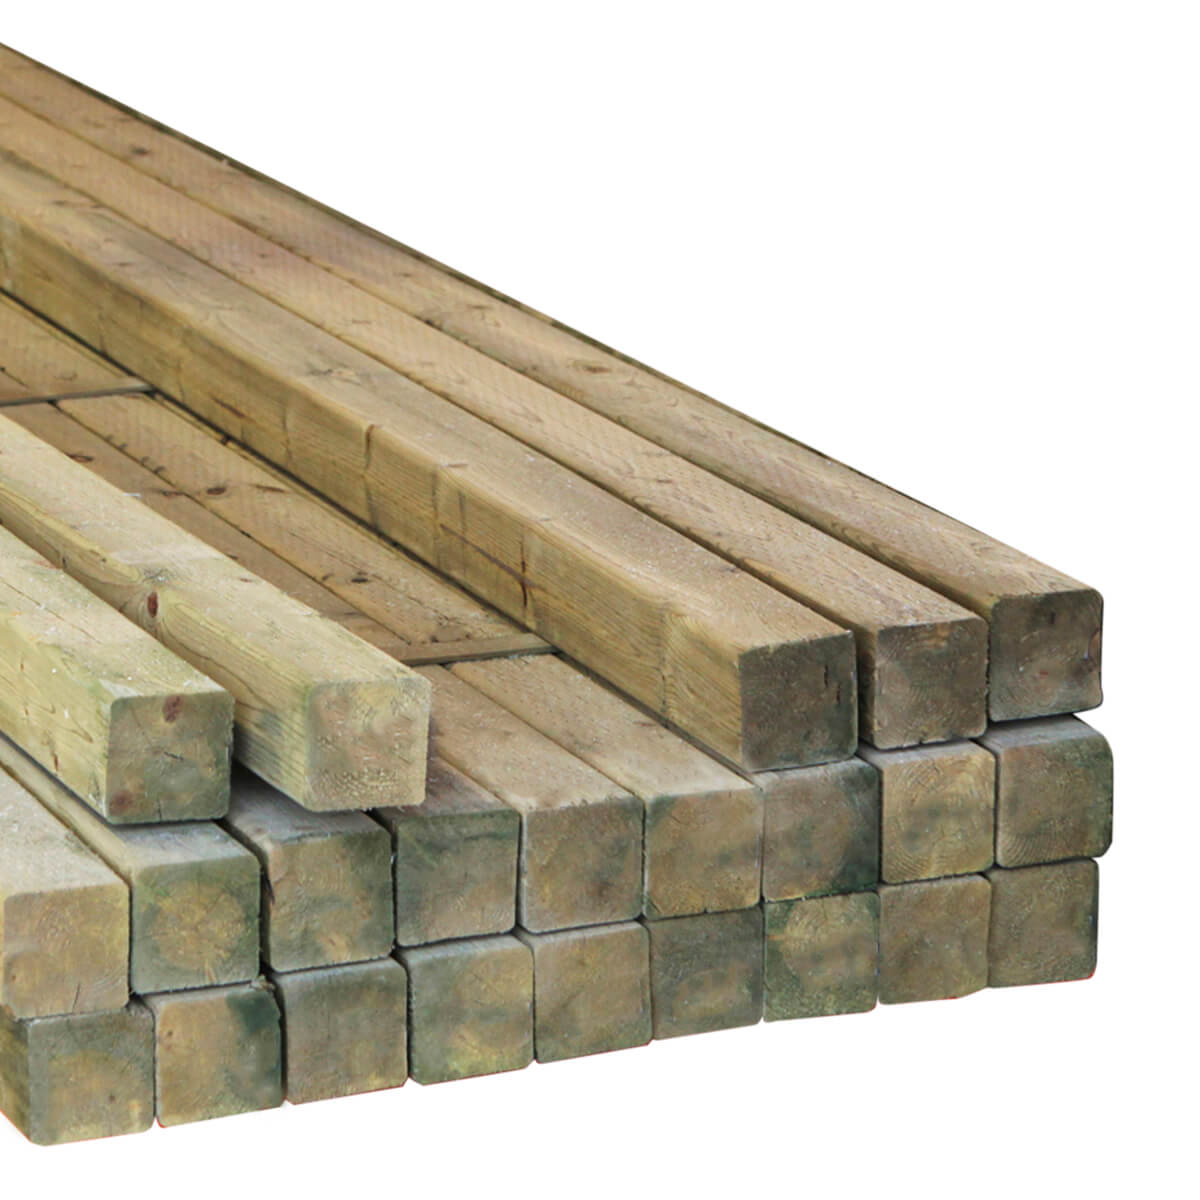 Rough CCA Treated Timbers - 6 x 6 x 24-ft